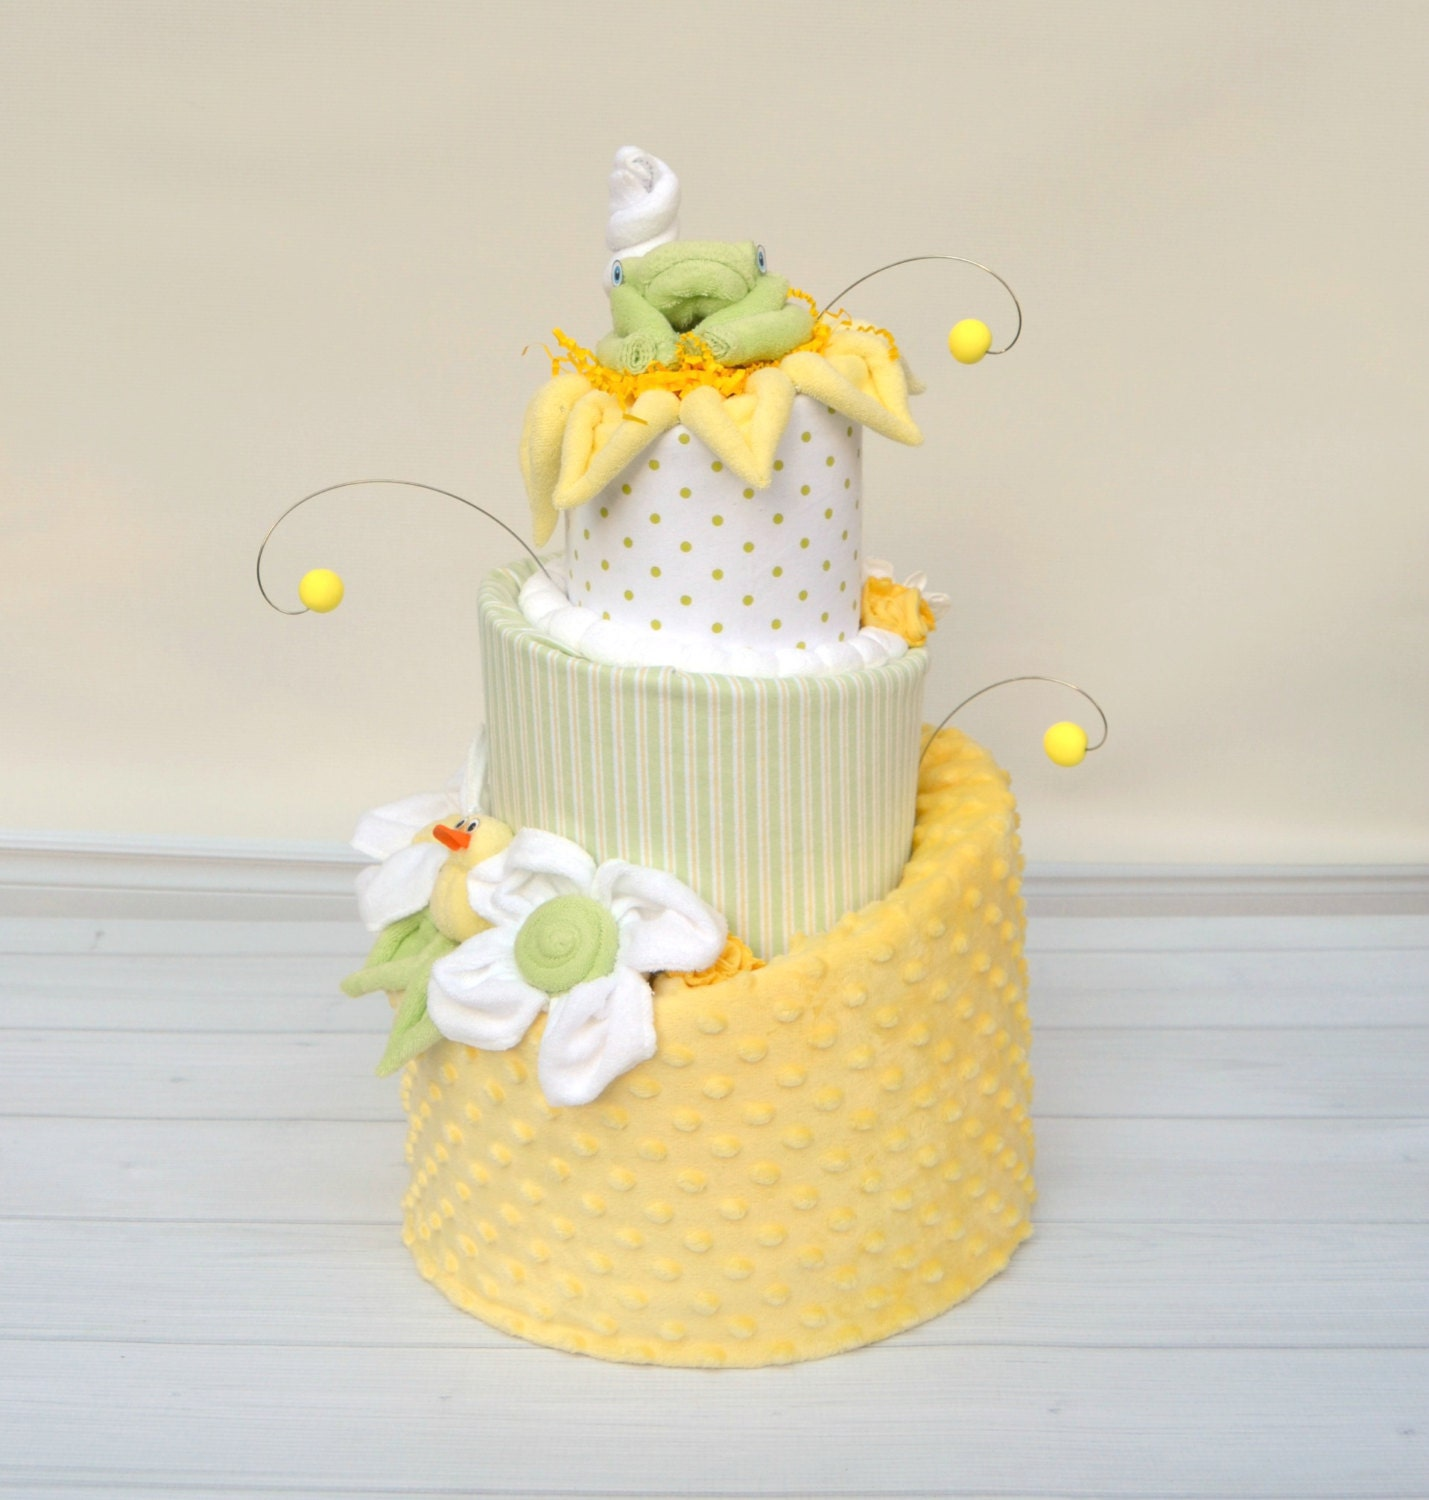 Green Baby Gifts Uk : Diaper cakes gender neutral baby gifts yellow and green